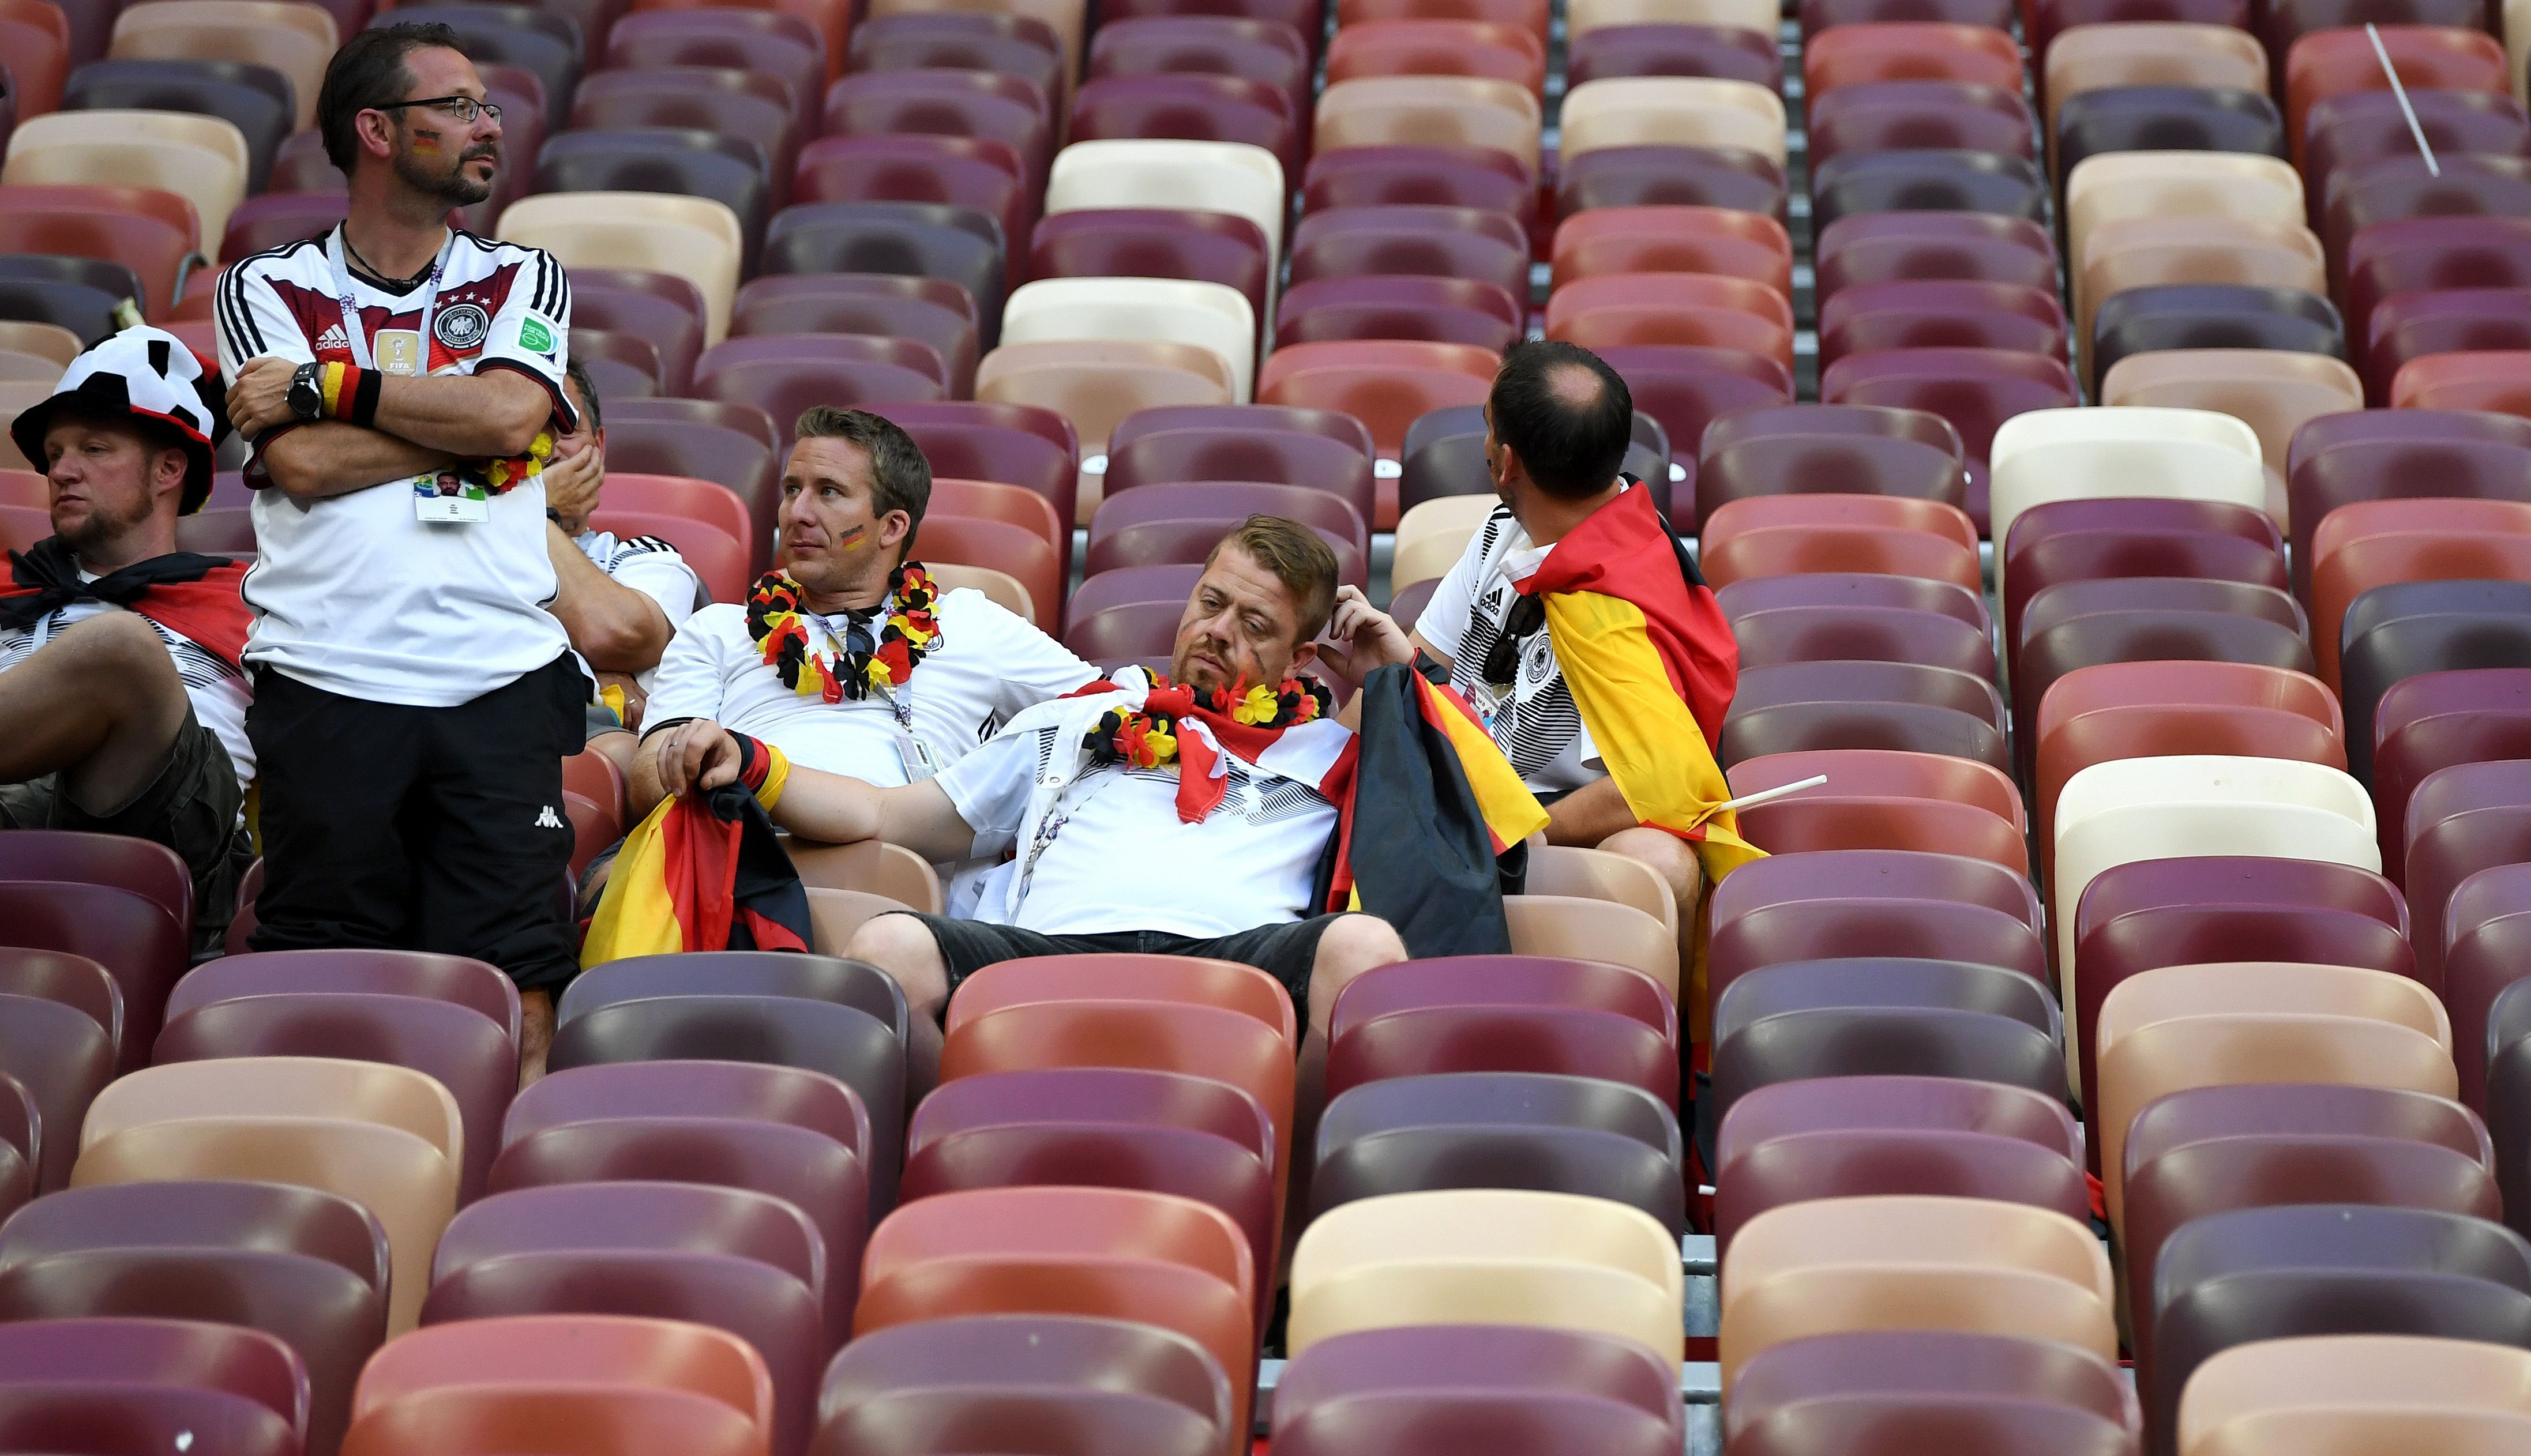 Germany and their fans will need to regroup to get three points vs. Sweden in their next match.